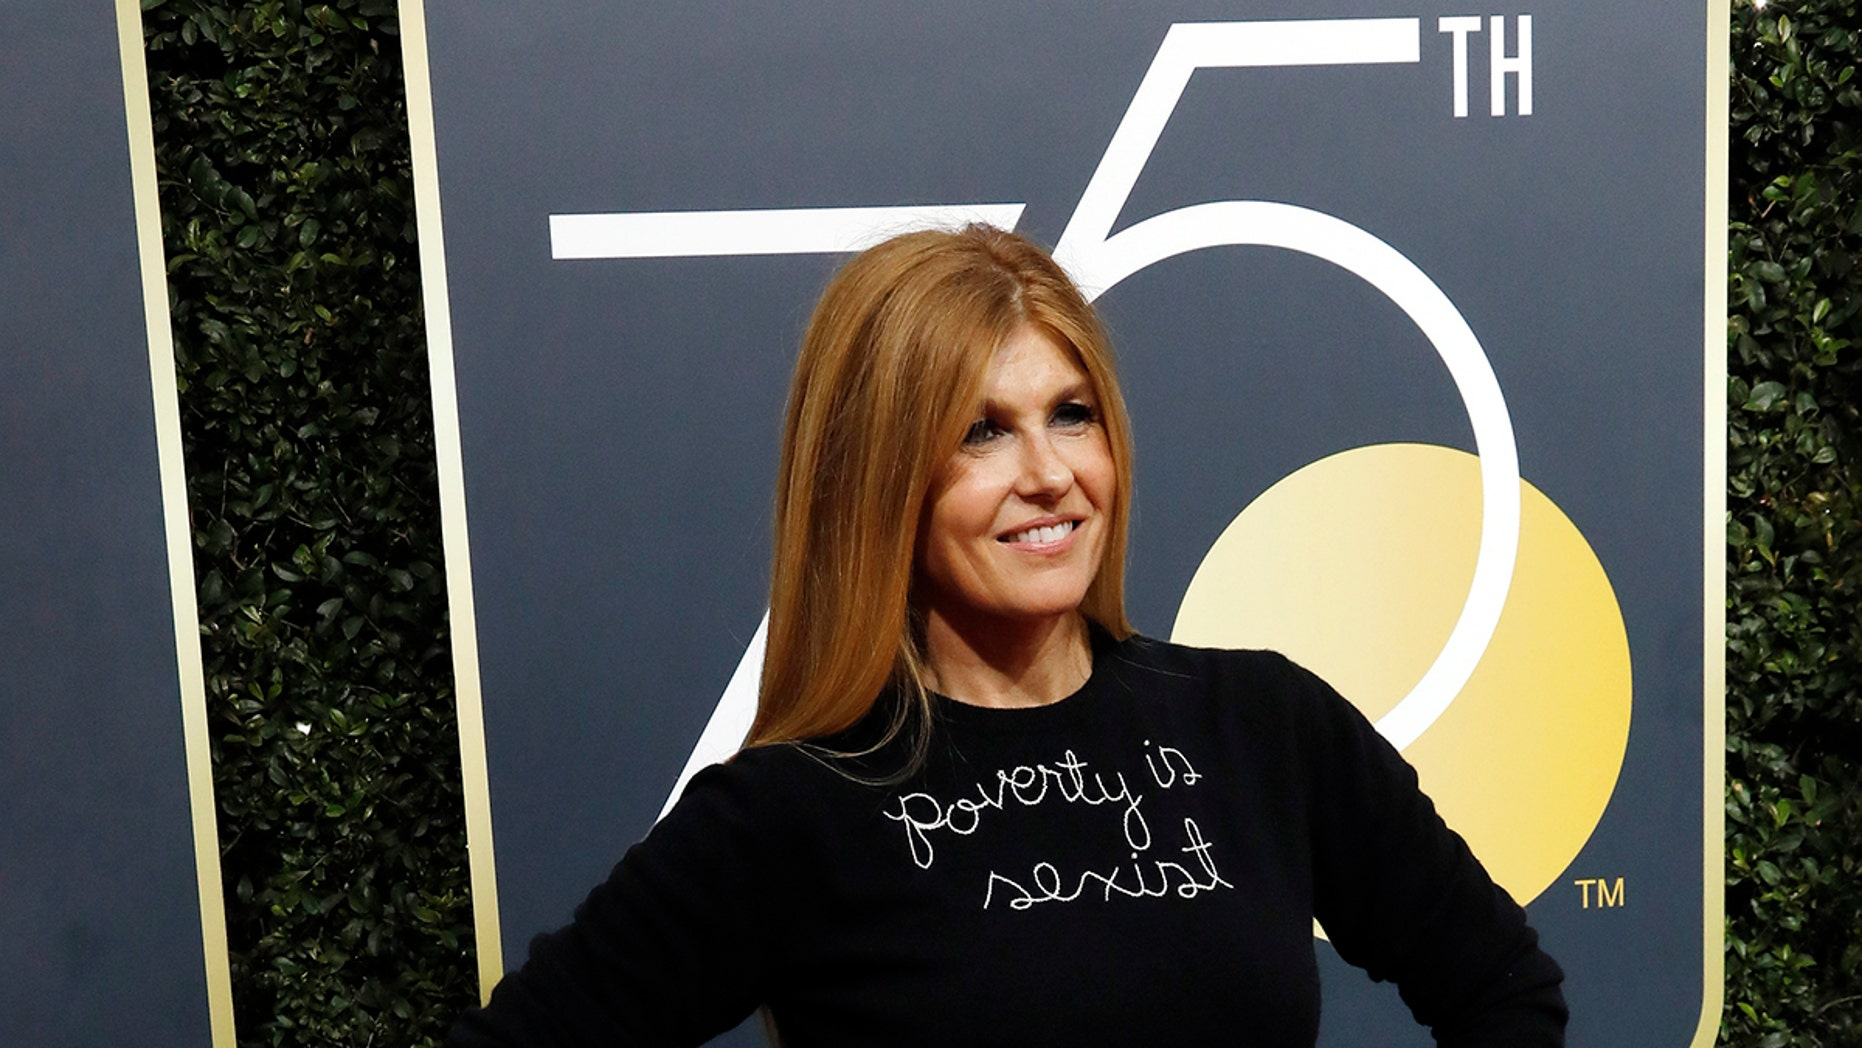 """Actress Connie Britton turns heads at the 2018 Golden Globes with """"Poverty is sexist"""" sweater."""